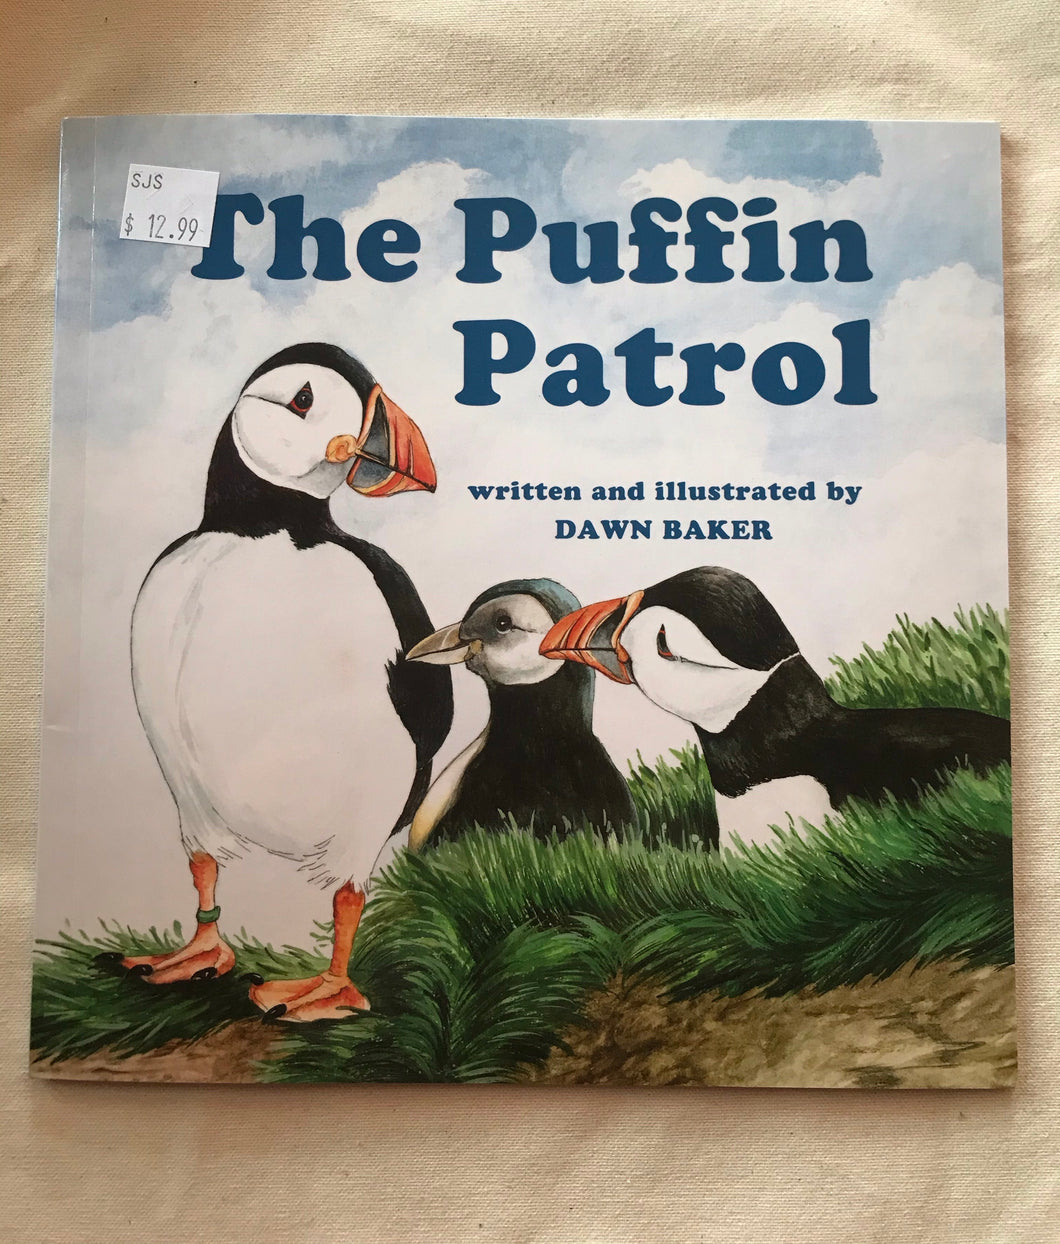 The Puffin Patrol Children's Book